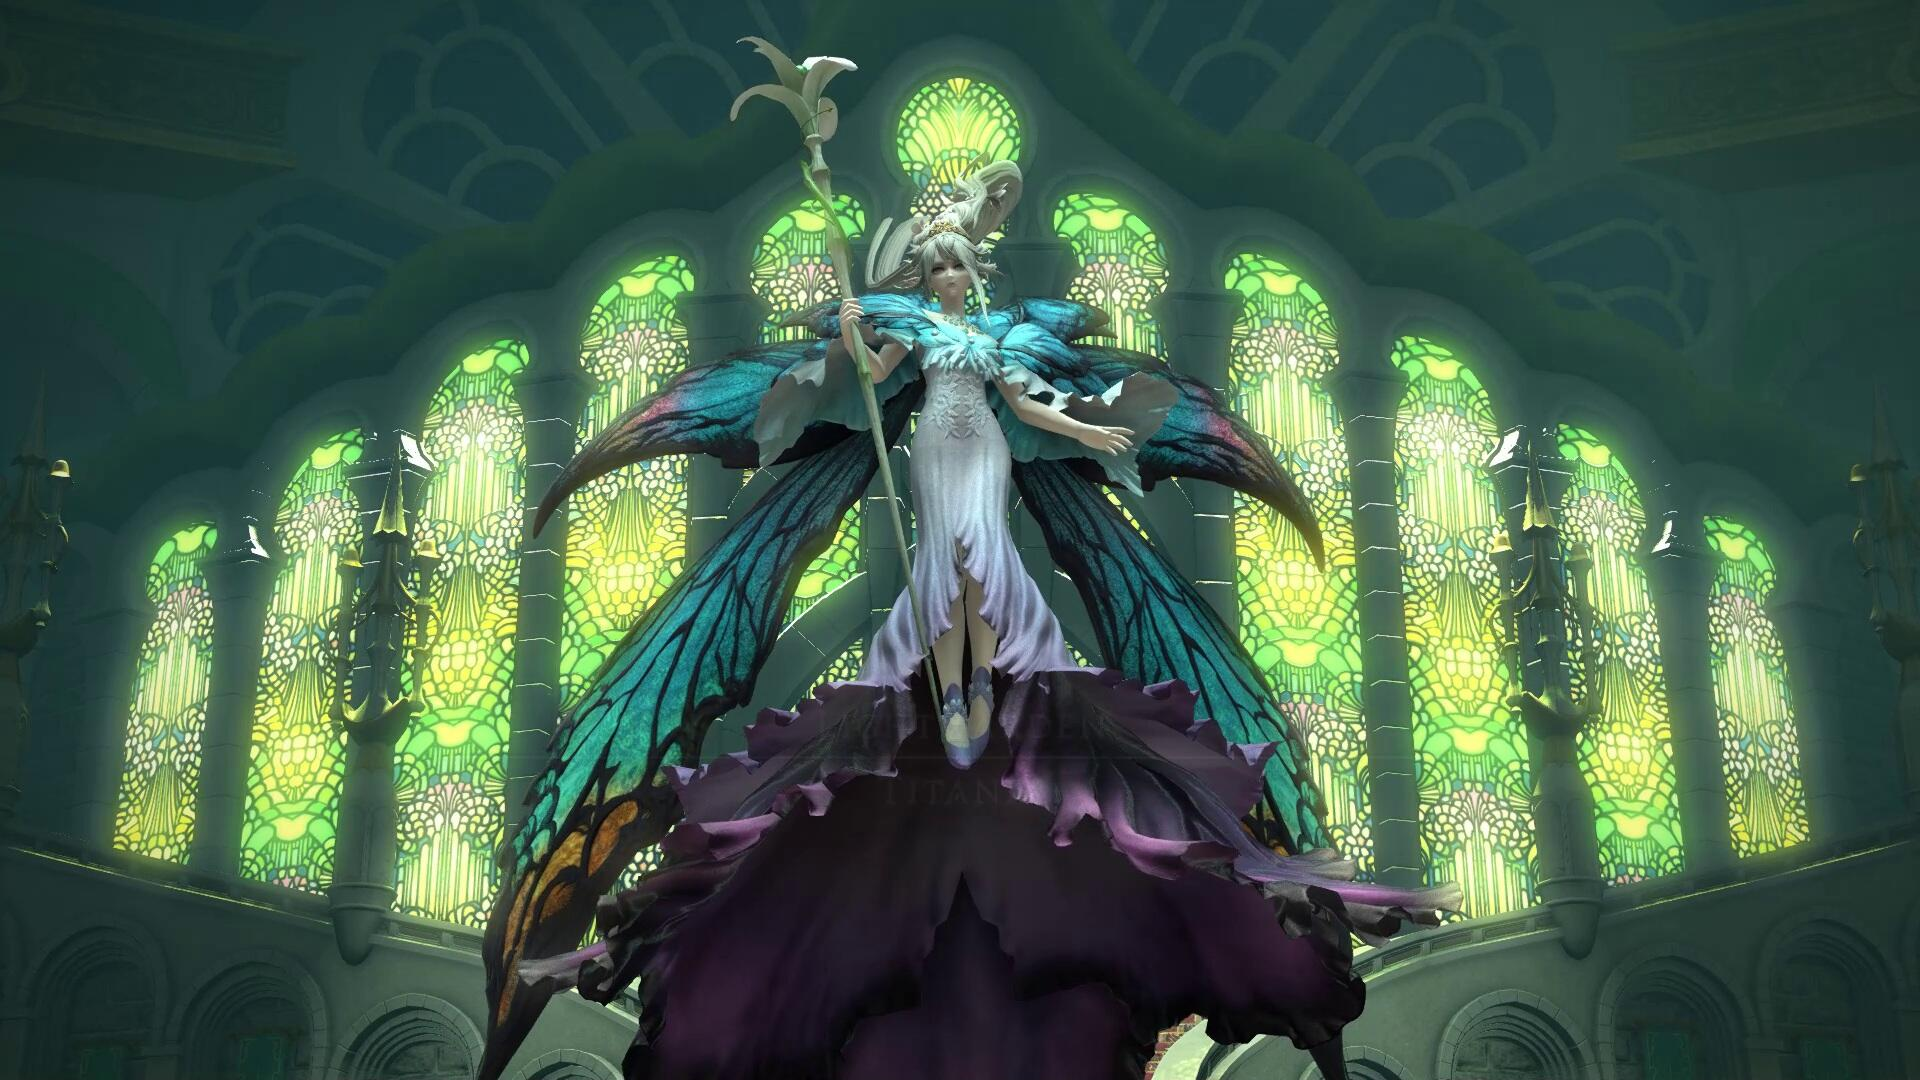 Final Fantasy 14: Shadowbringers - Titania, The Dancing Plague